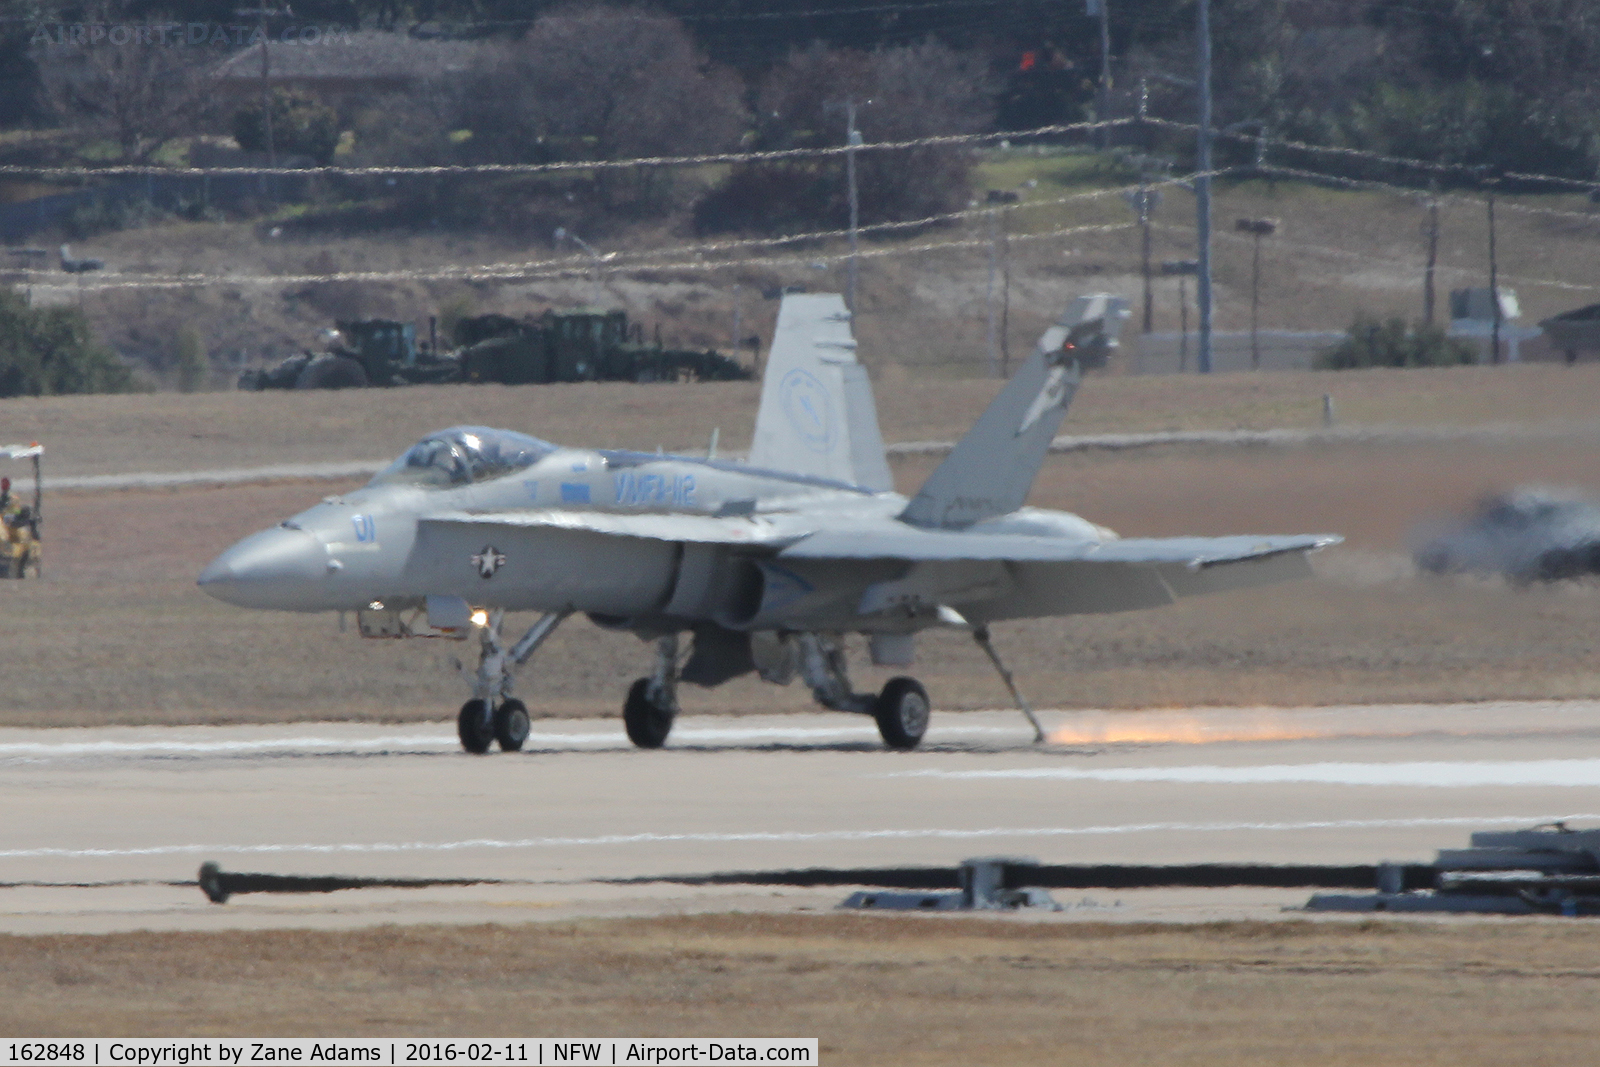 162848, McDonnell Douglas F/A-18A++ Hornet C/N 374/A313, Catching the wire at NAS fort Worth